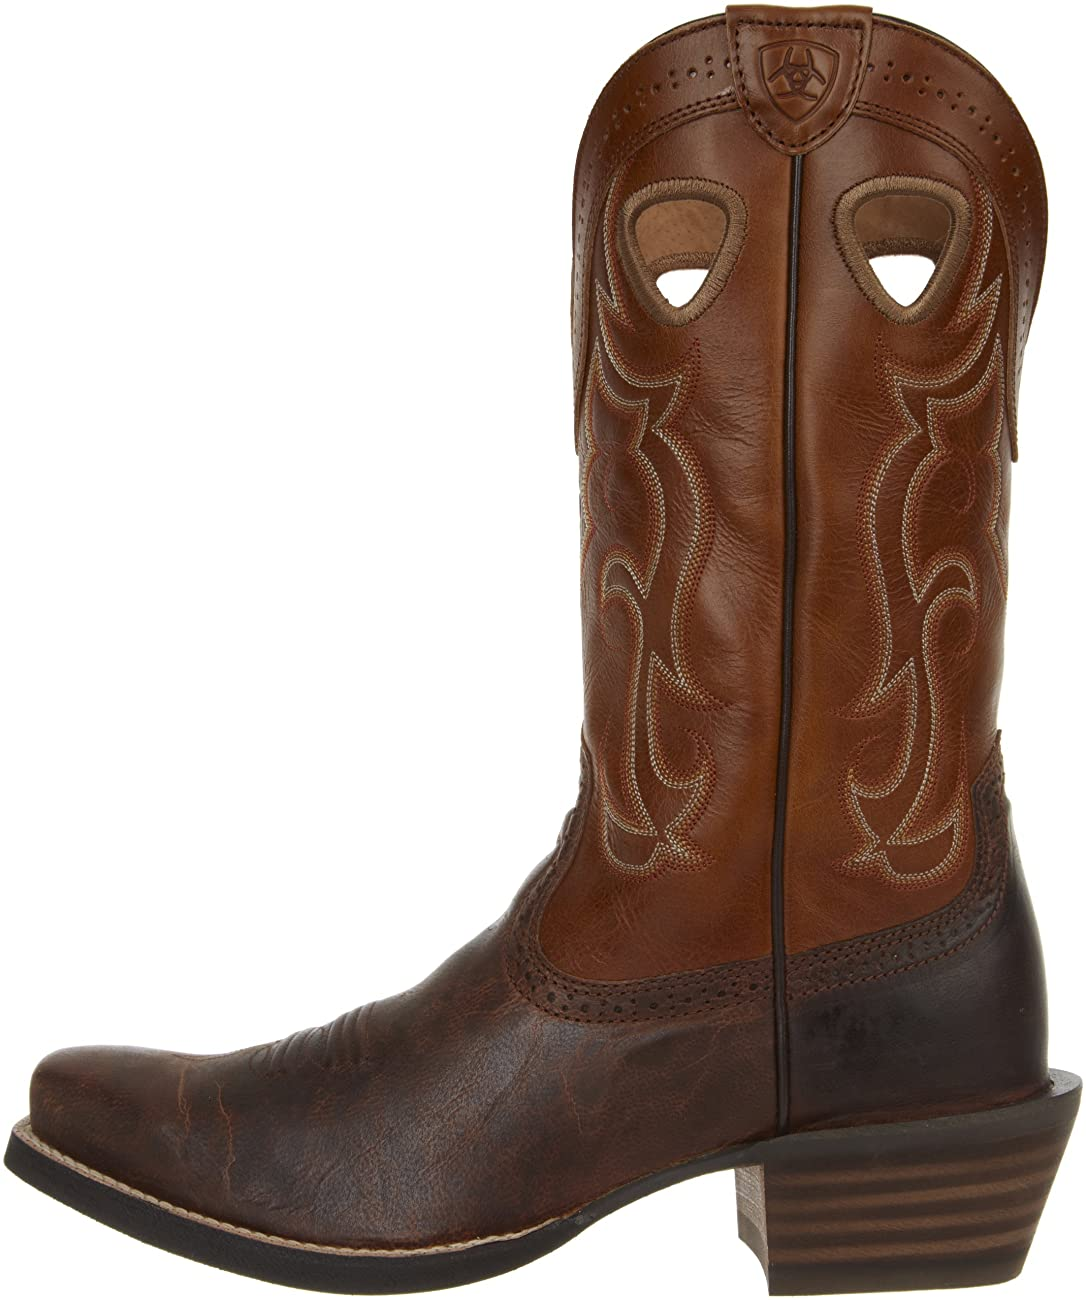 Ariat Men's Rawhide Western Cowboy Boot 6